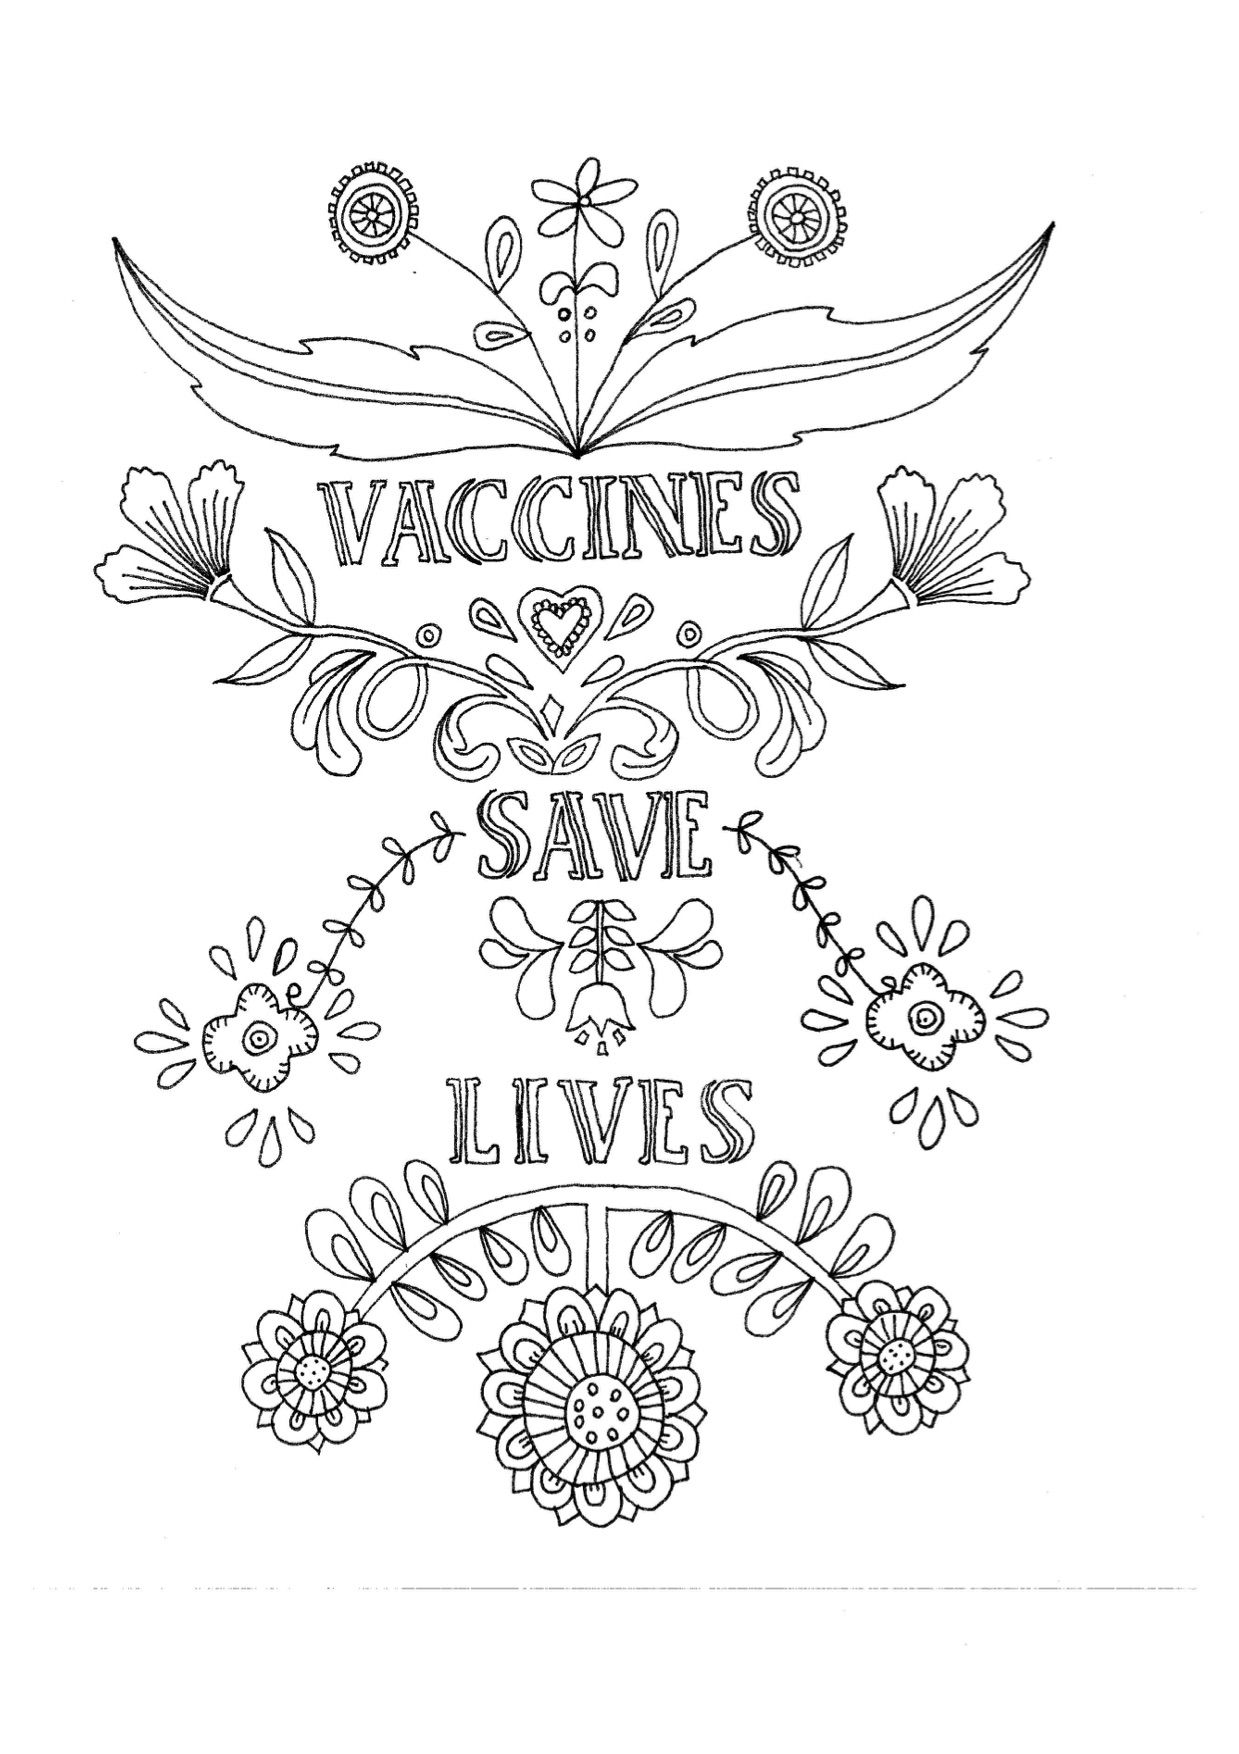 Pin on Vaccines Save Lives